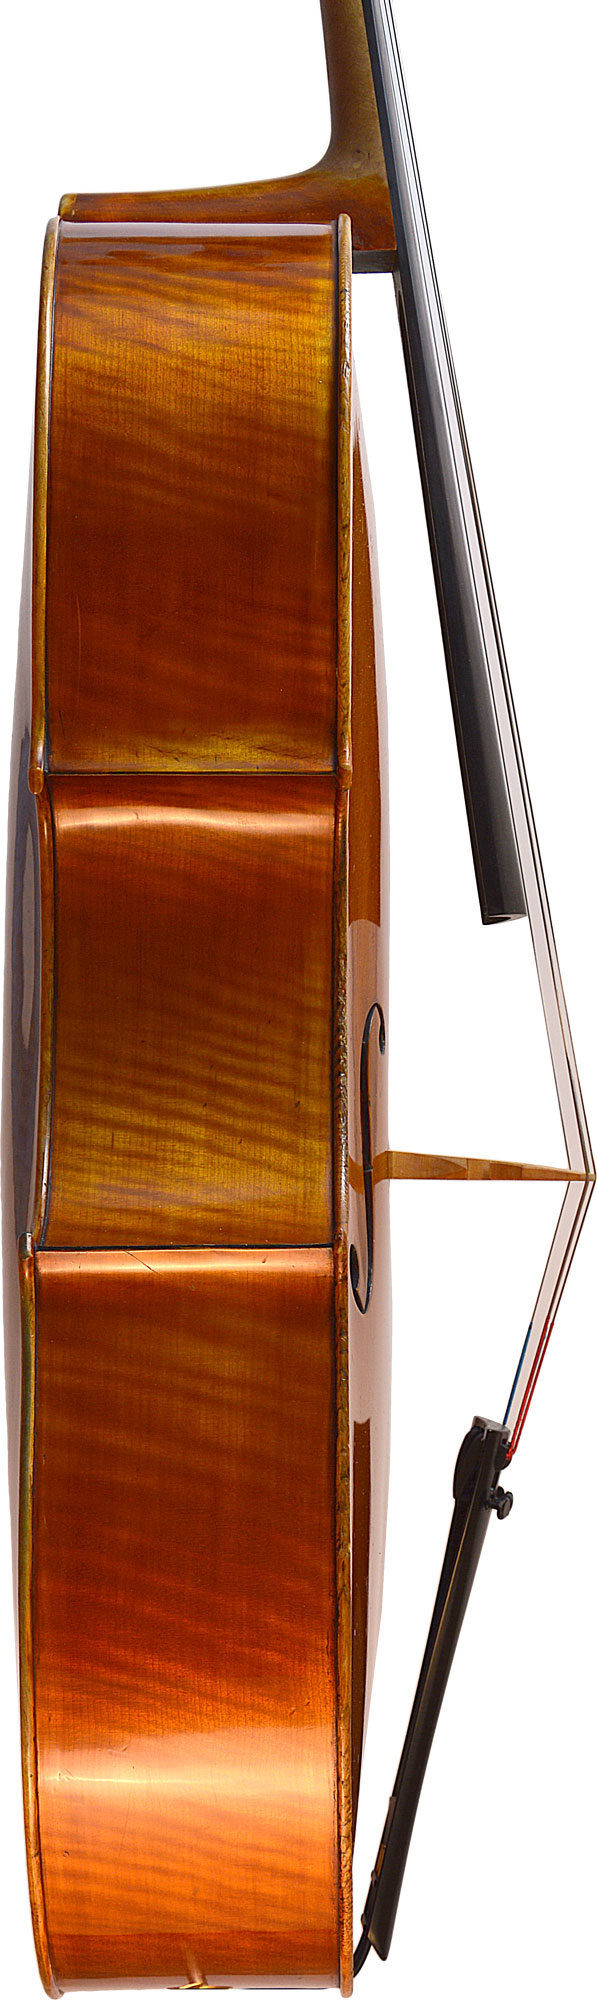 DV542-Cello-Allemand-eclisse